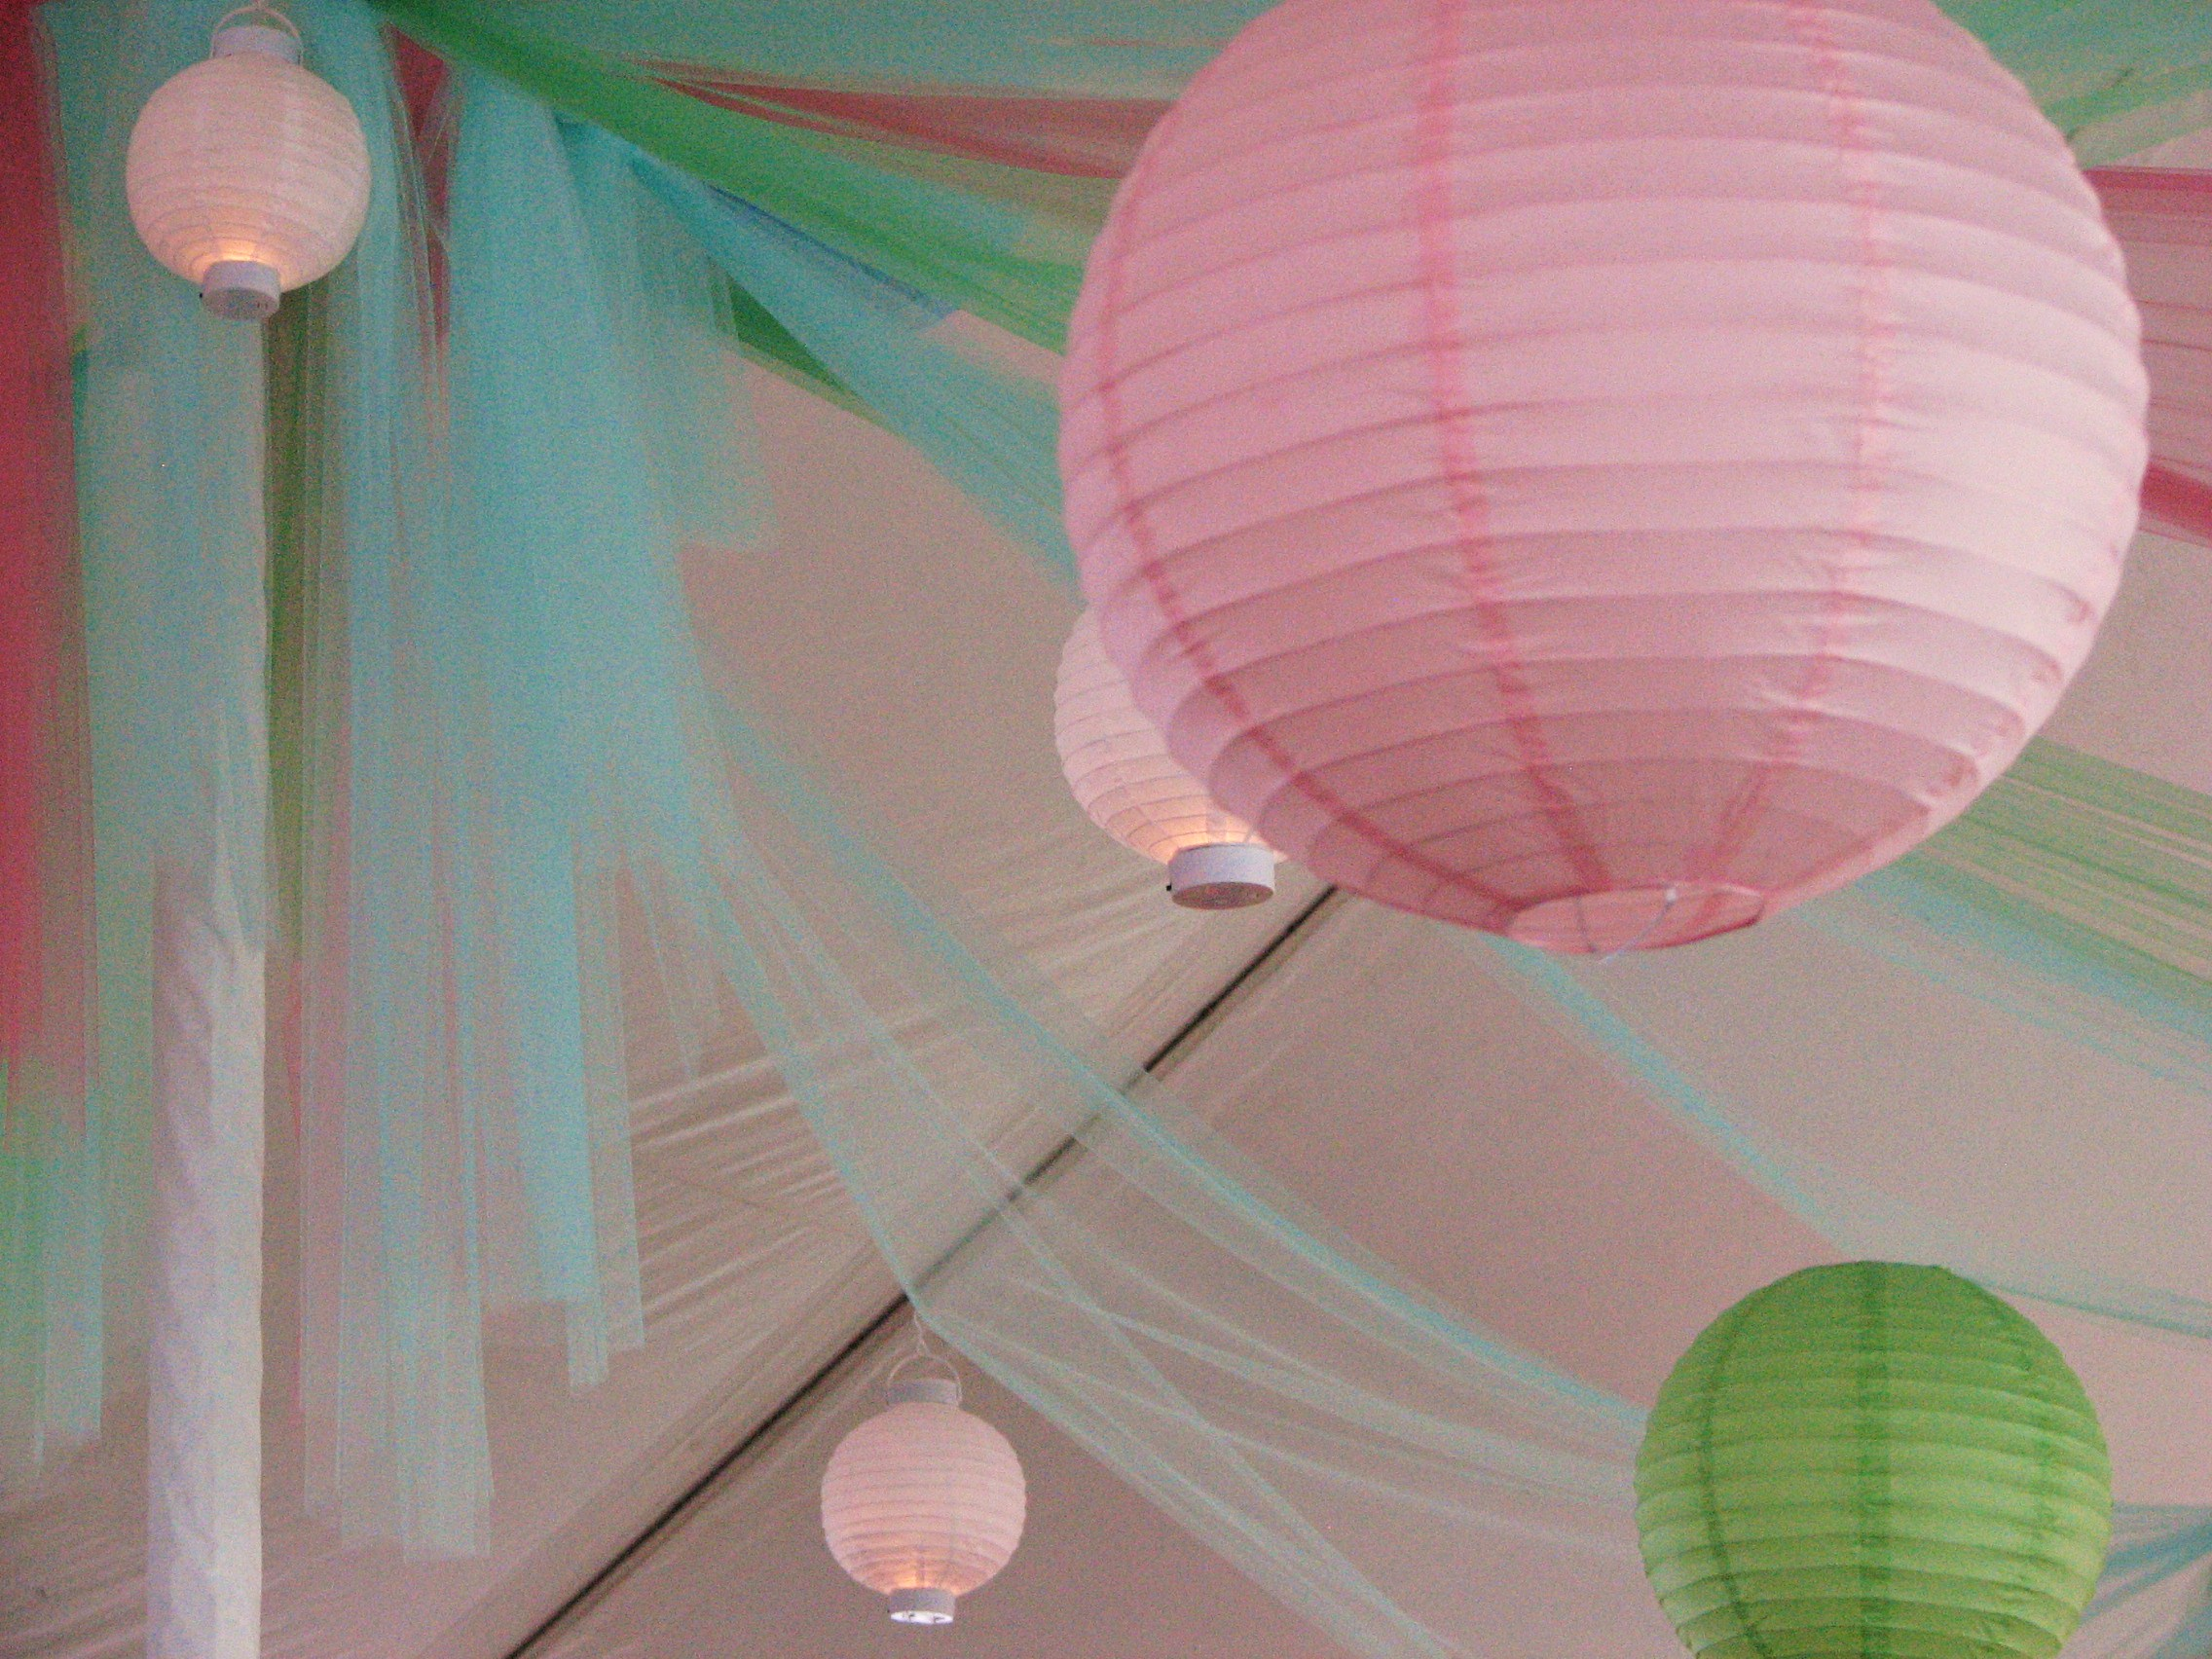 paper lantern and fabric tent decor used at an event at Hamtead Acres